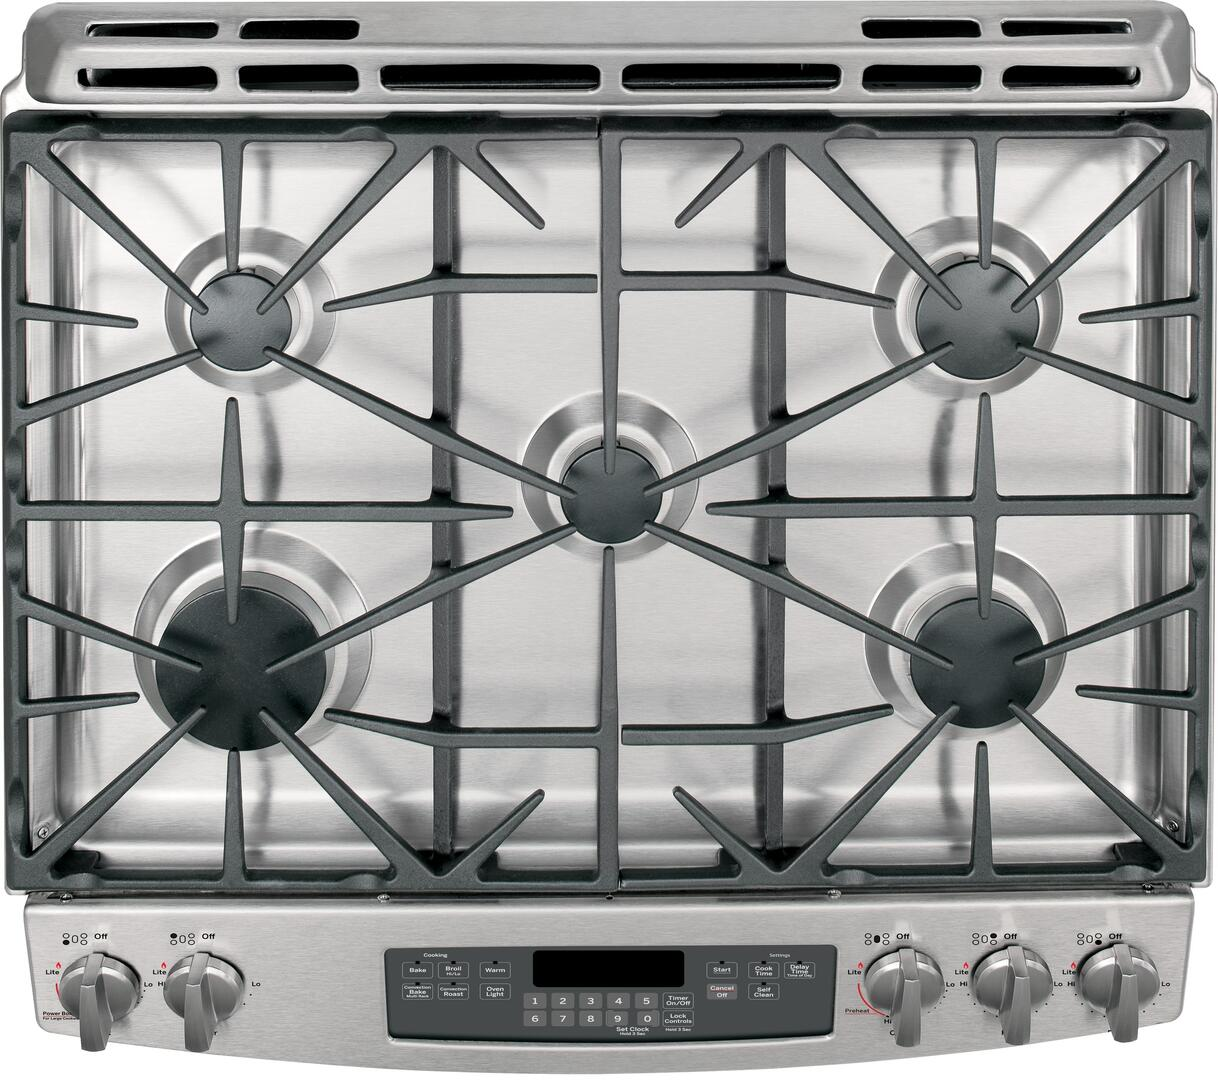 Kitchen gas stove top view -  Ge Cooktop View